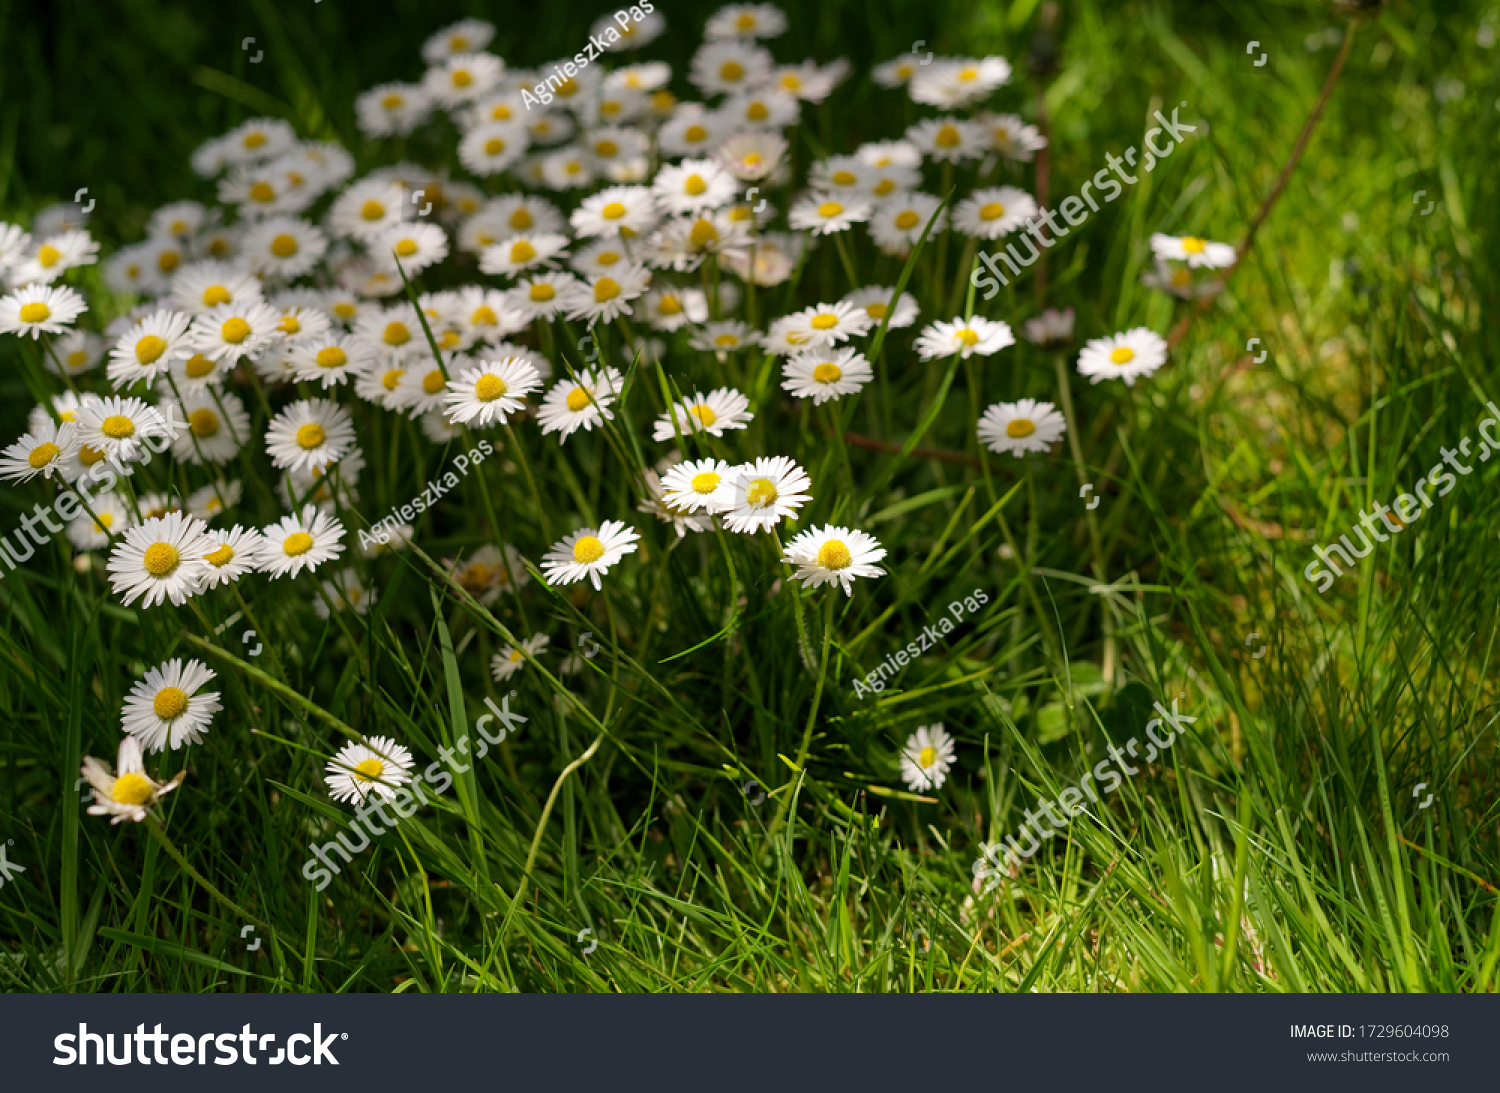 A group of white daisies (Bellis perennis) in the meadow. Irish wildflowers known as Common daisies, Oxeye daisies or Leucanthemum vulgare. Selective focus. Sunny day.